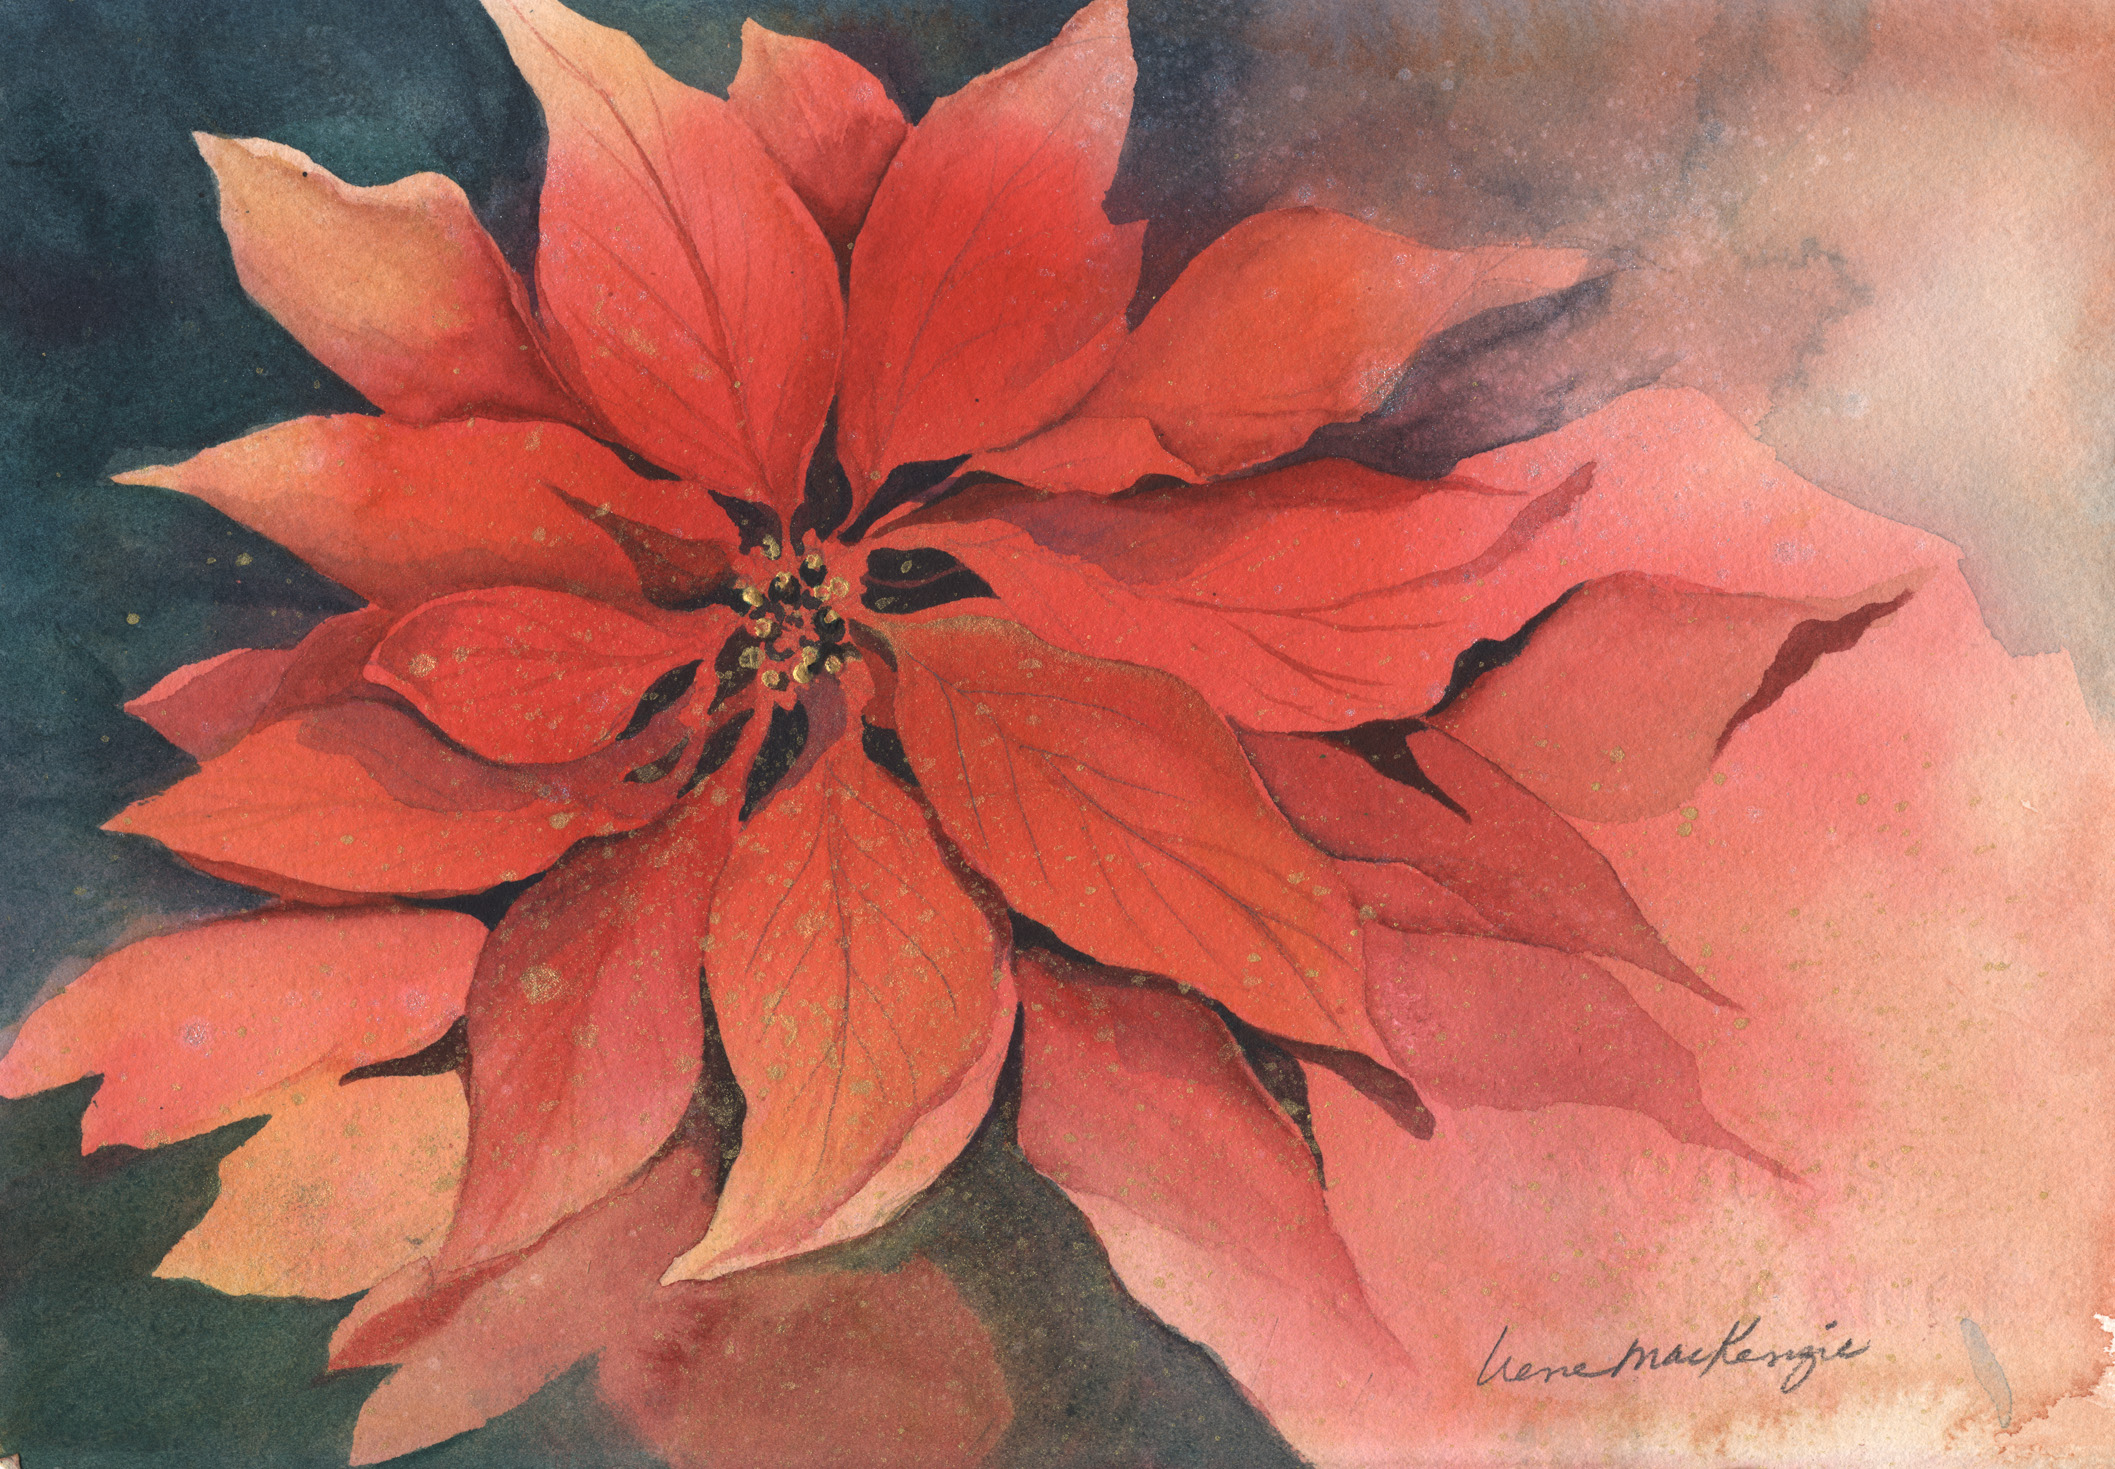 Golden Poinsettis